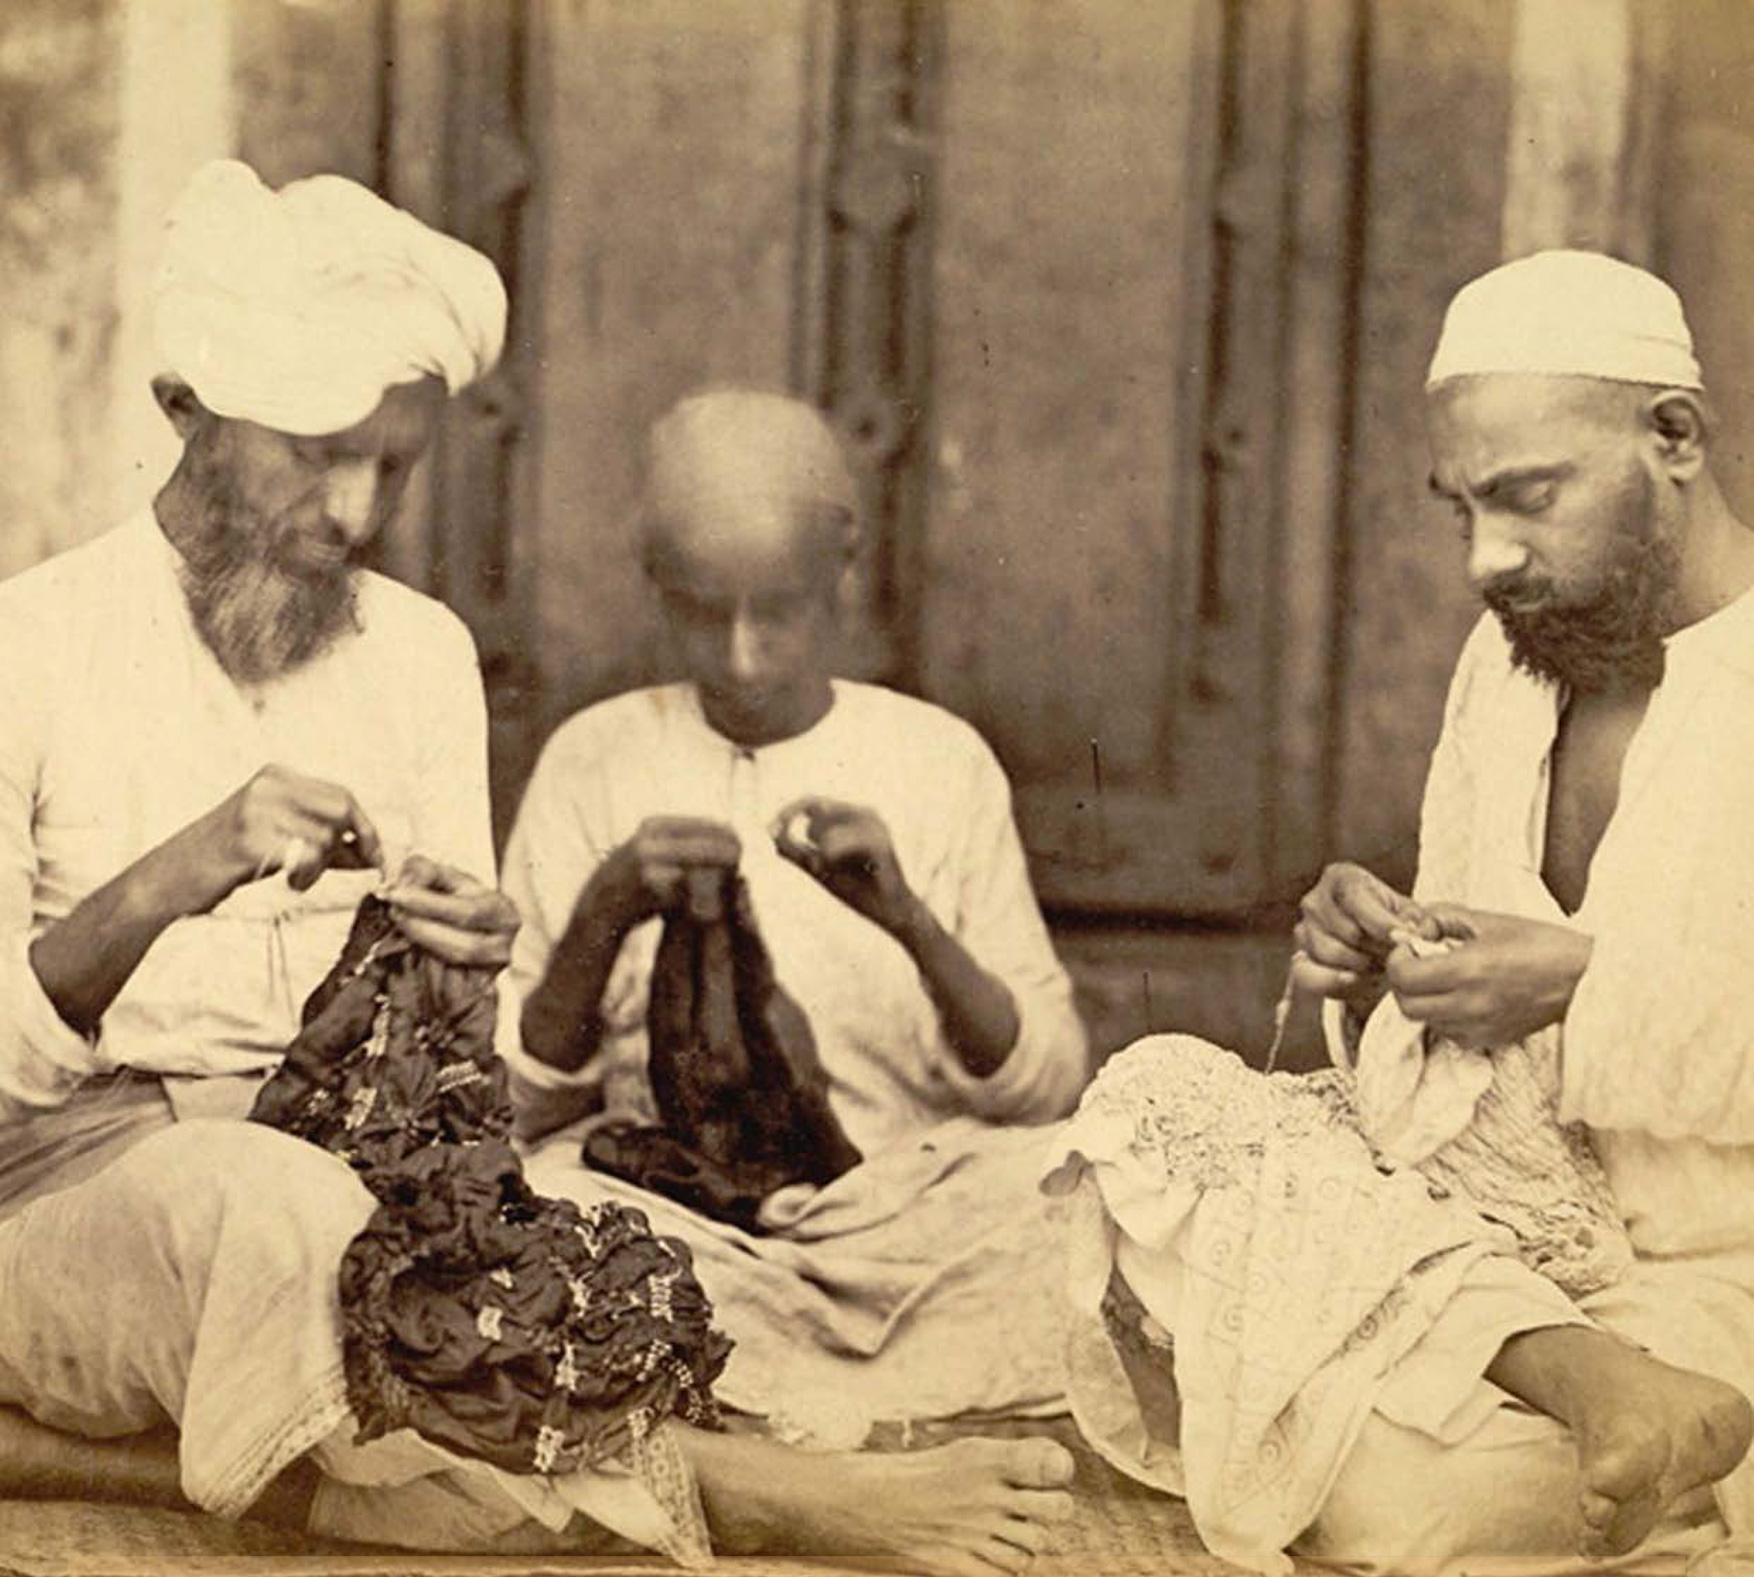 Silk knotters at work in Western India, taken by Shivashanker Narayen in c. 1873, Archaeological Survey of India Collections © British Library